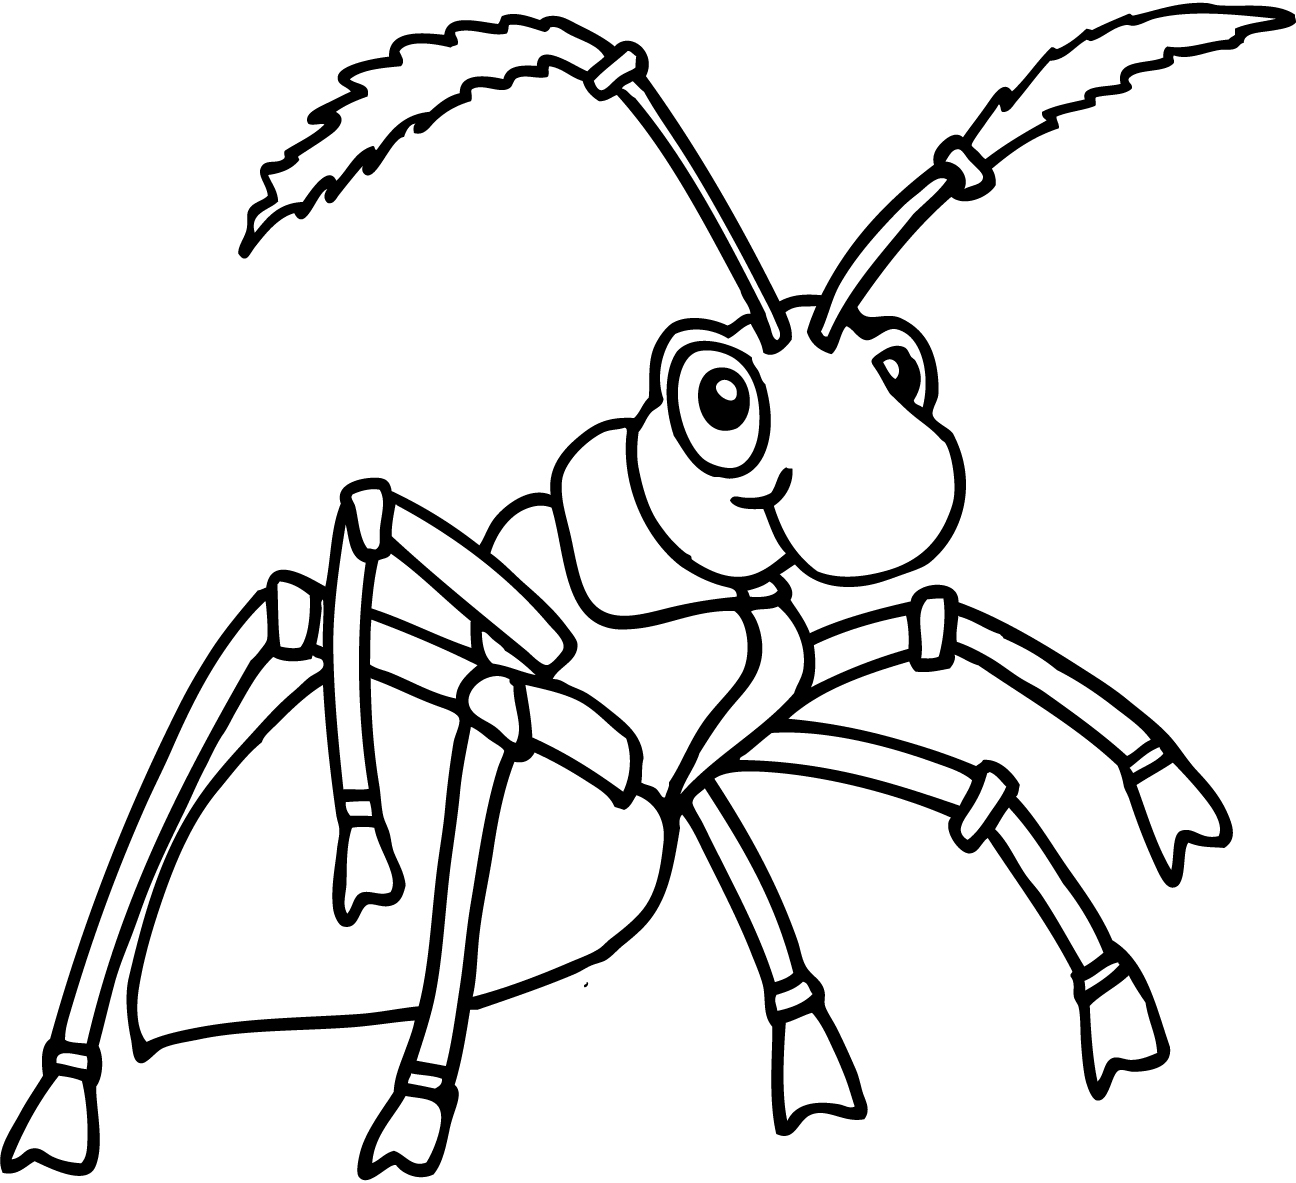 Free Preschool Ant Cliparts Download Free Clip Art Free Clip Art On Clipart Library